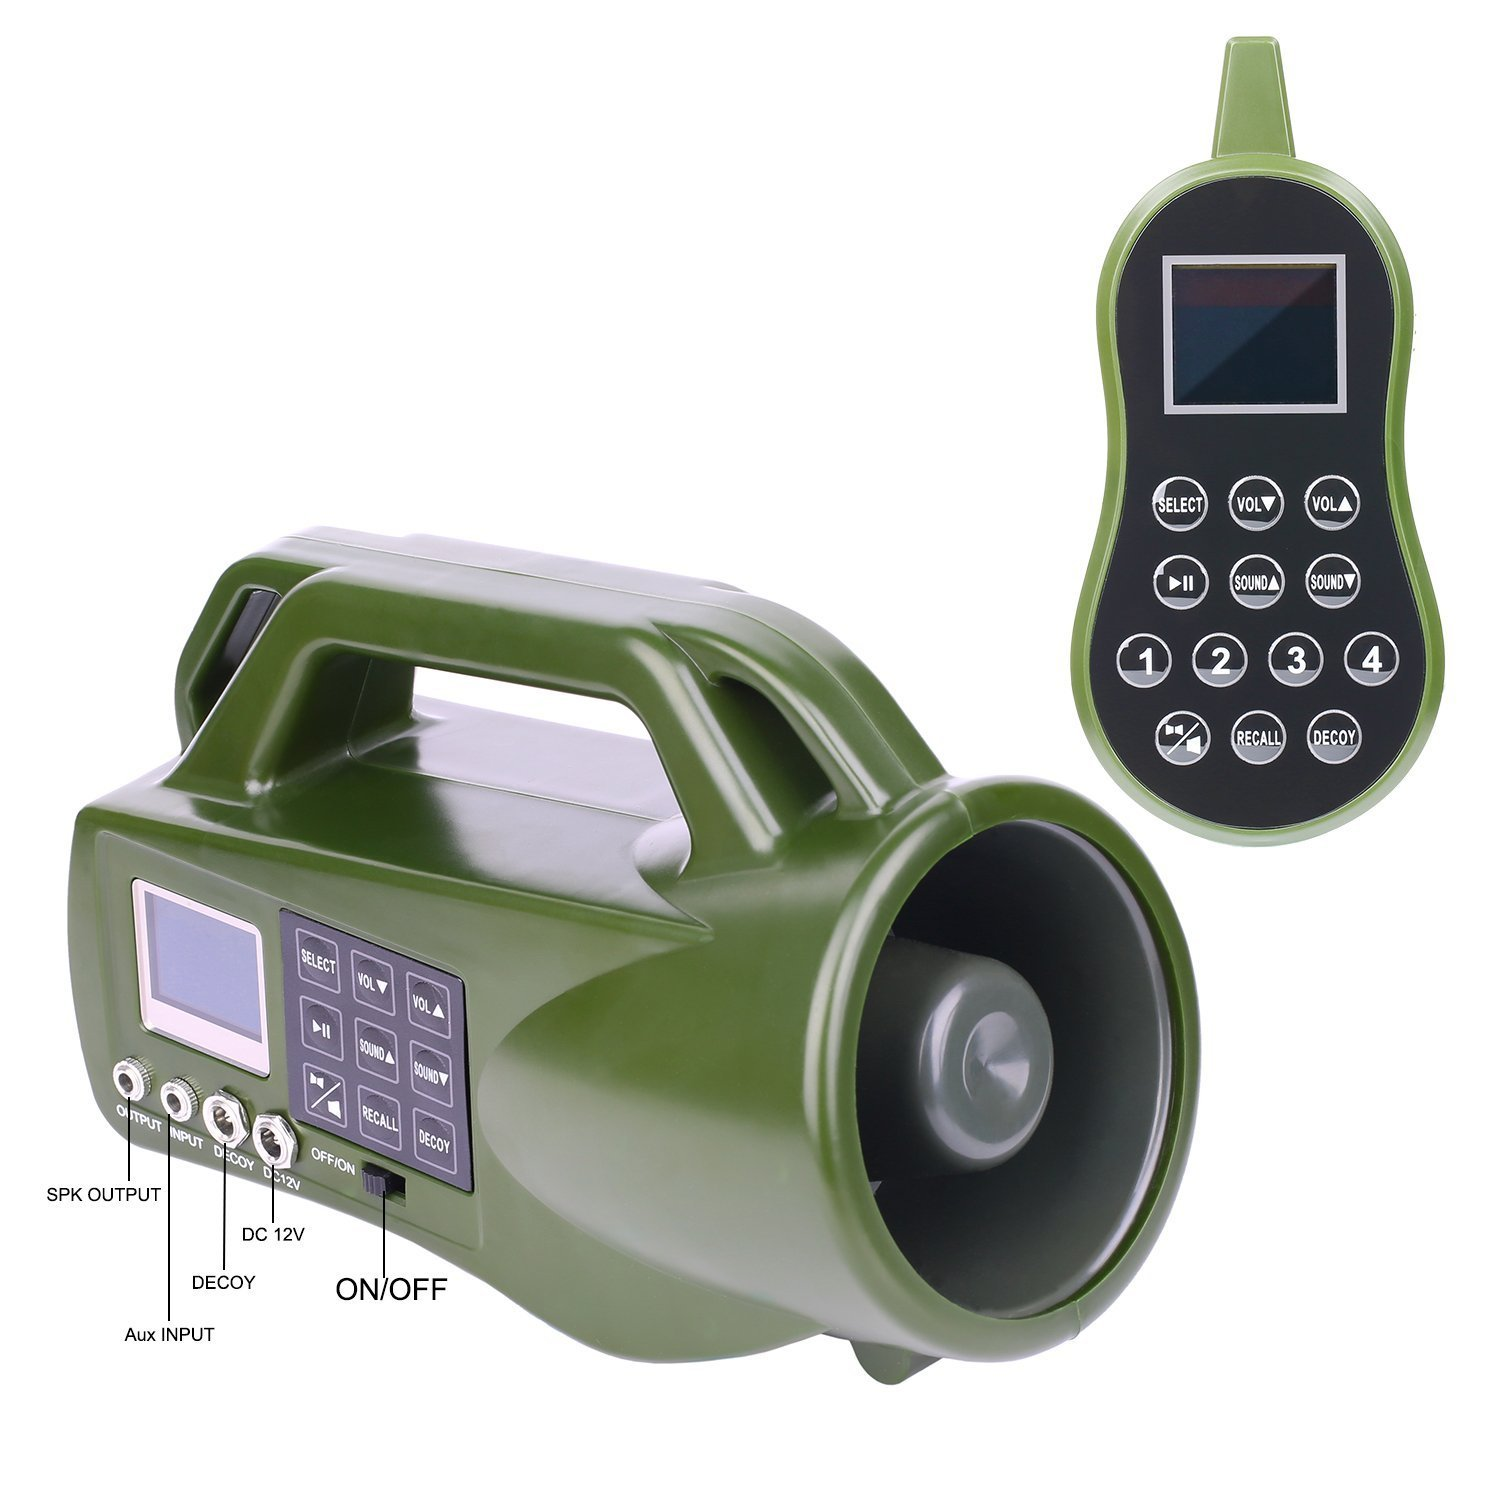 HKCYSEA Hunting Bait Caller 400 Songs Outdoor MP3 Player LCD Screen Loud Speaker With Wireless Remote Control Wildlife Decoy Game Predator by HKCYSEA (Image #3)